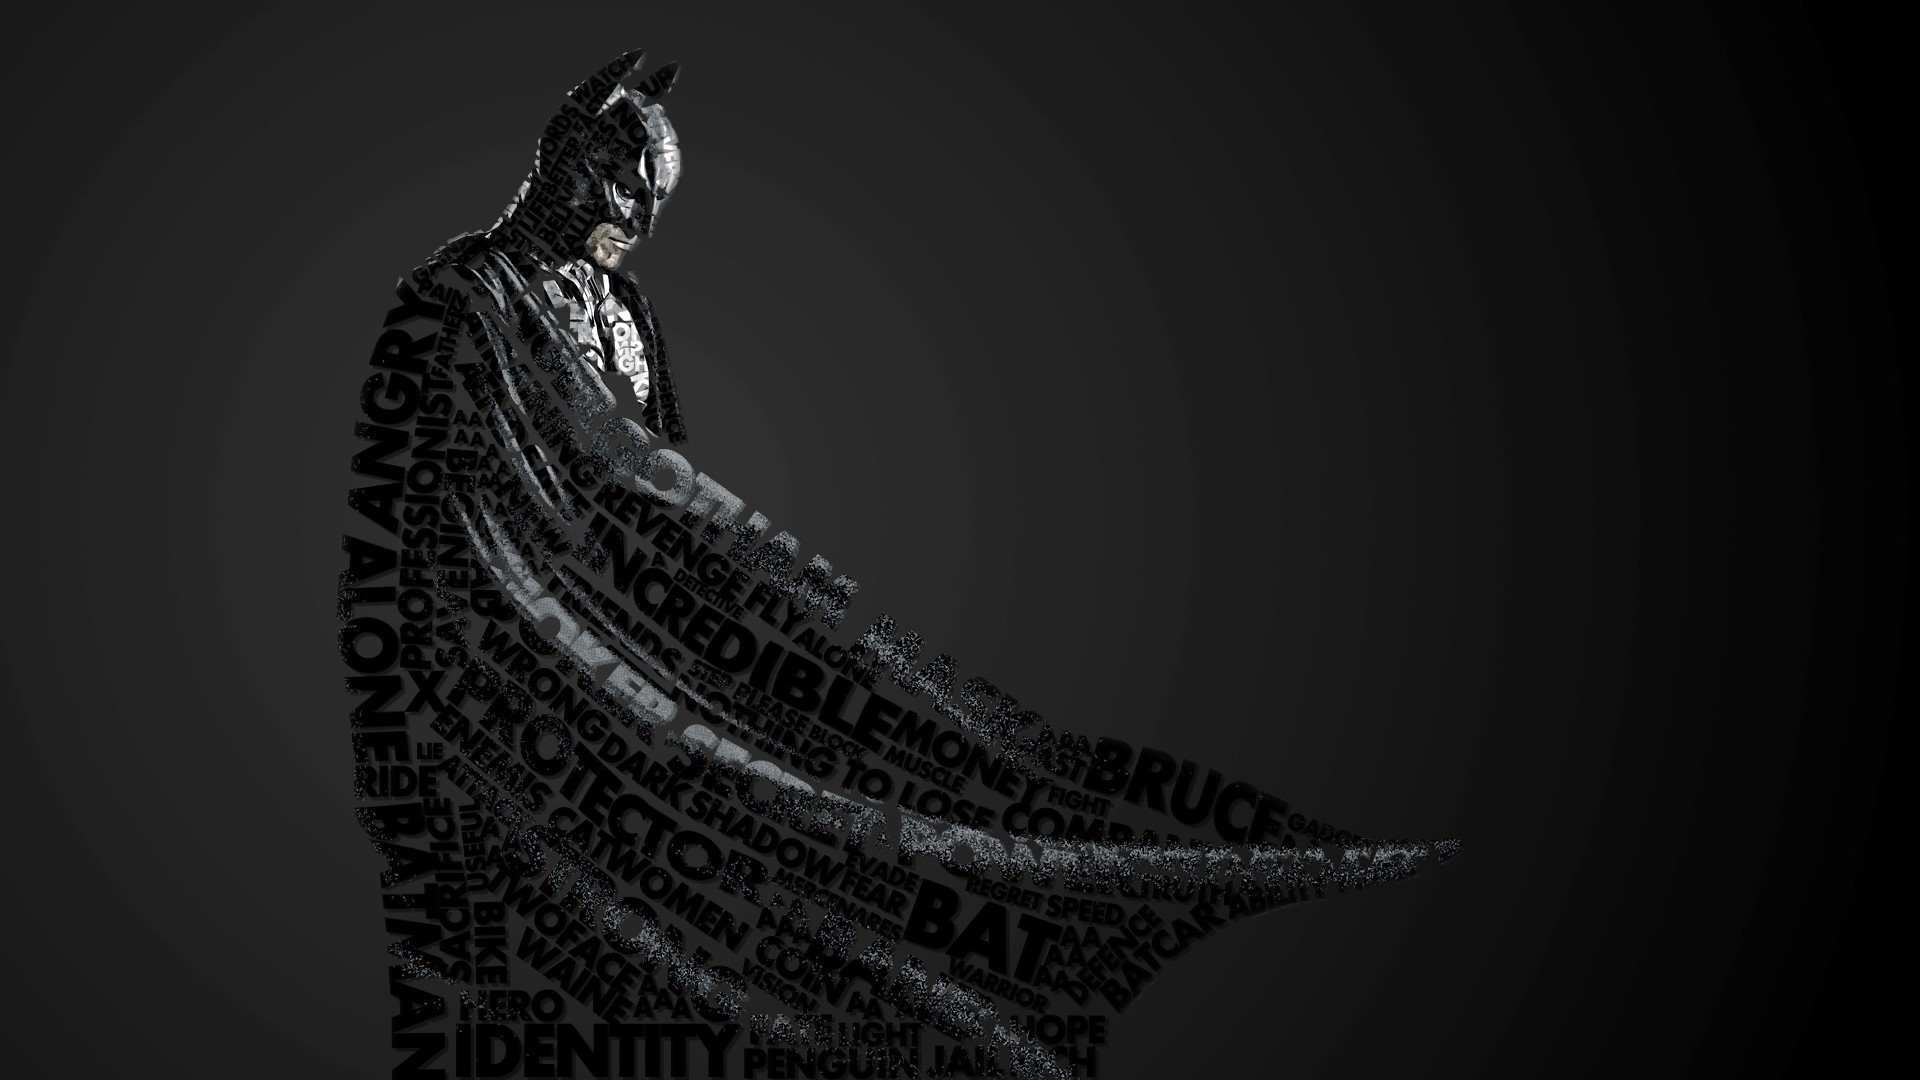 1920x1080 Batman Dark Knight Rises wallpapers and stock photos